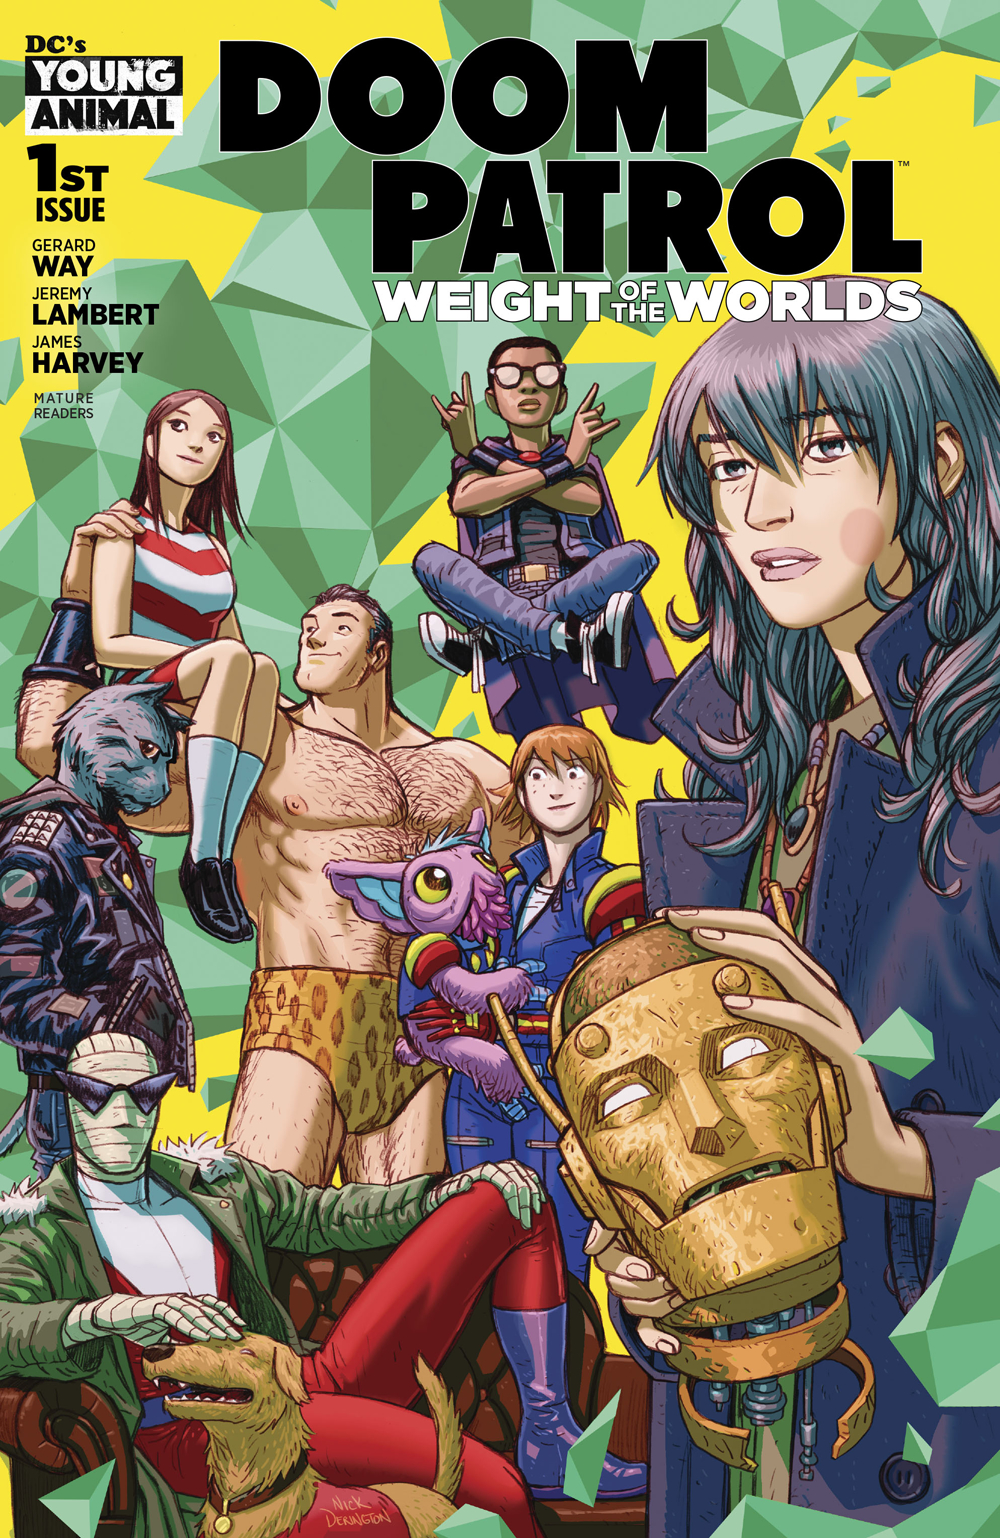 DOOM PATROL WEIGHT OF THE WORLDS #1 (MR)